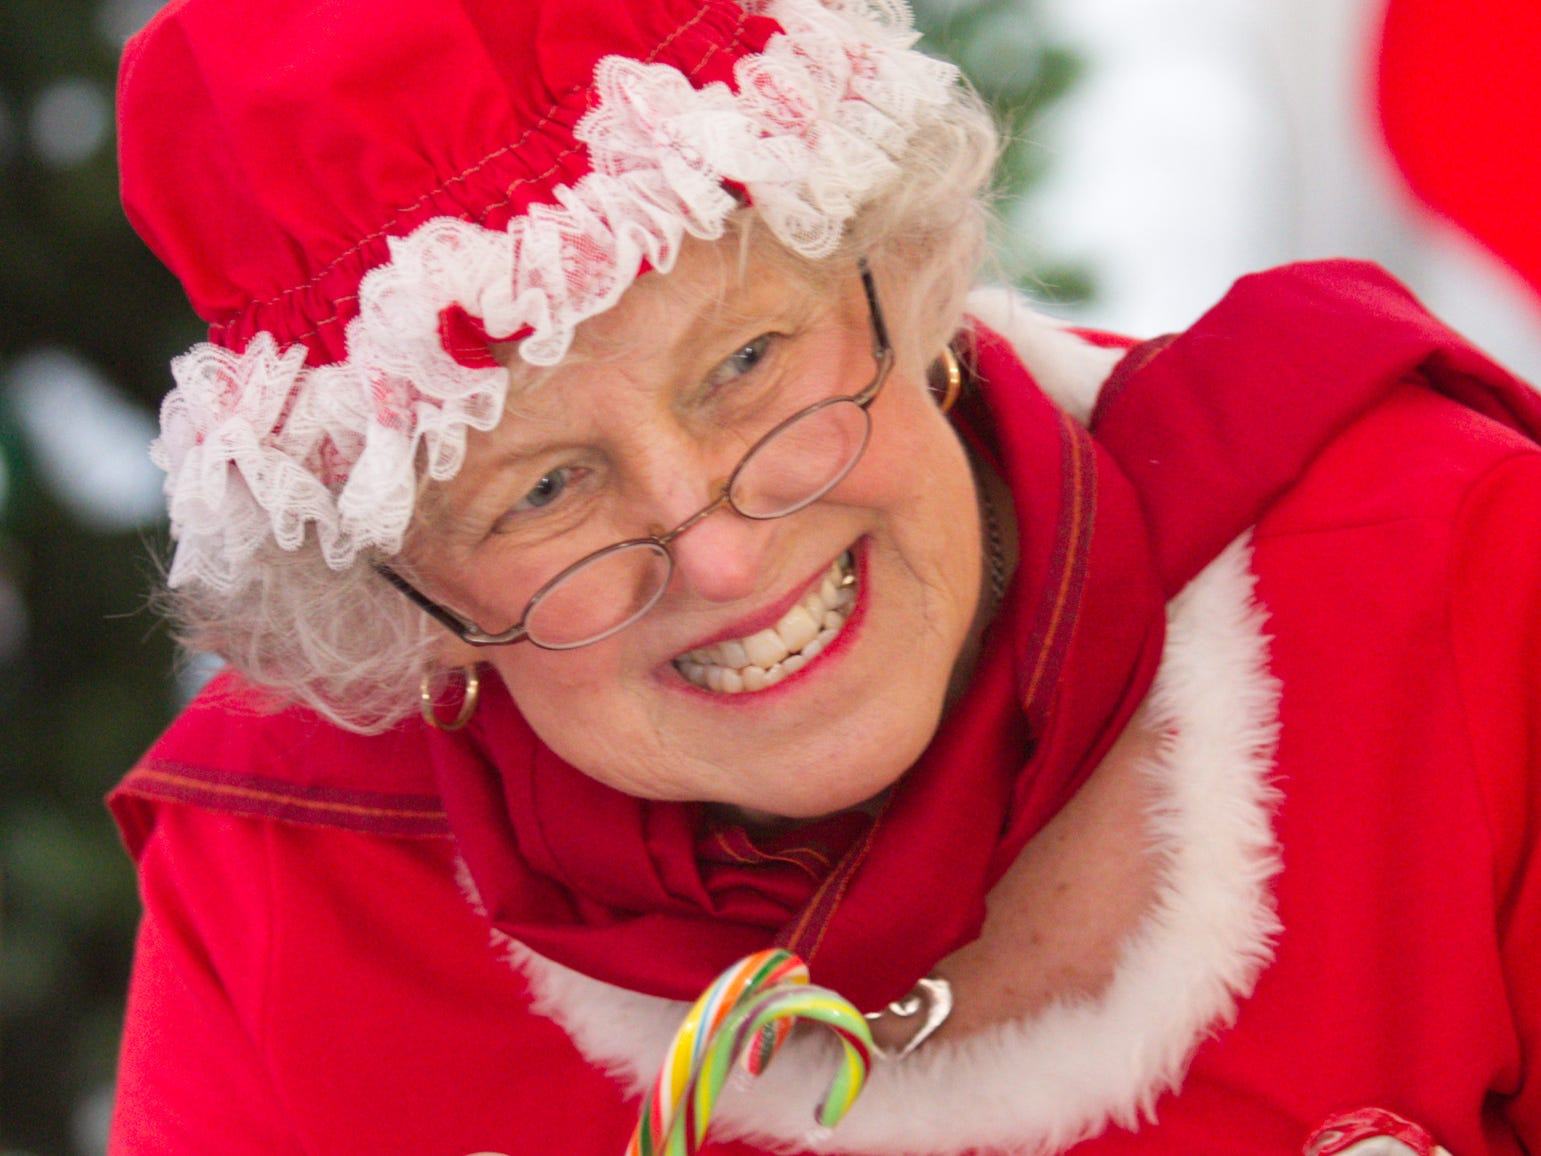 Mrs. Claus offers candy canes to children Saturday, Dec. 8, 2018 after they've told Santa what they want for Christmas, at Hartland's Polar Express.